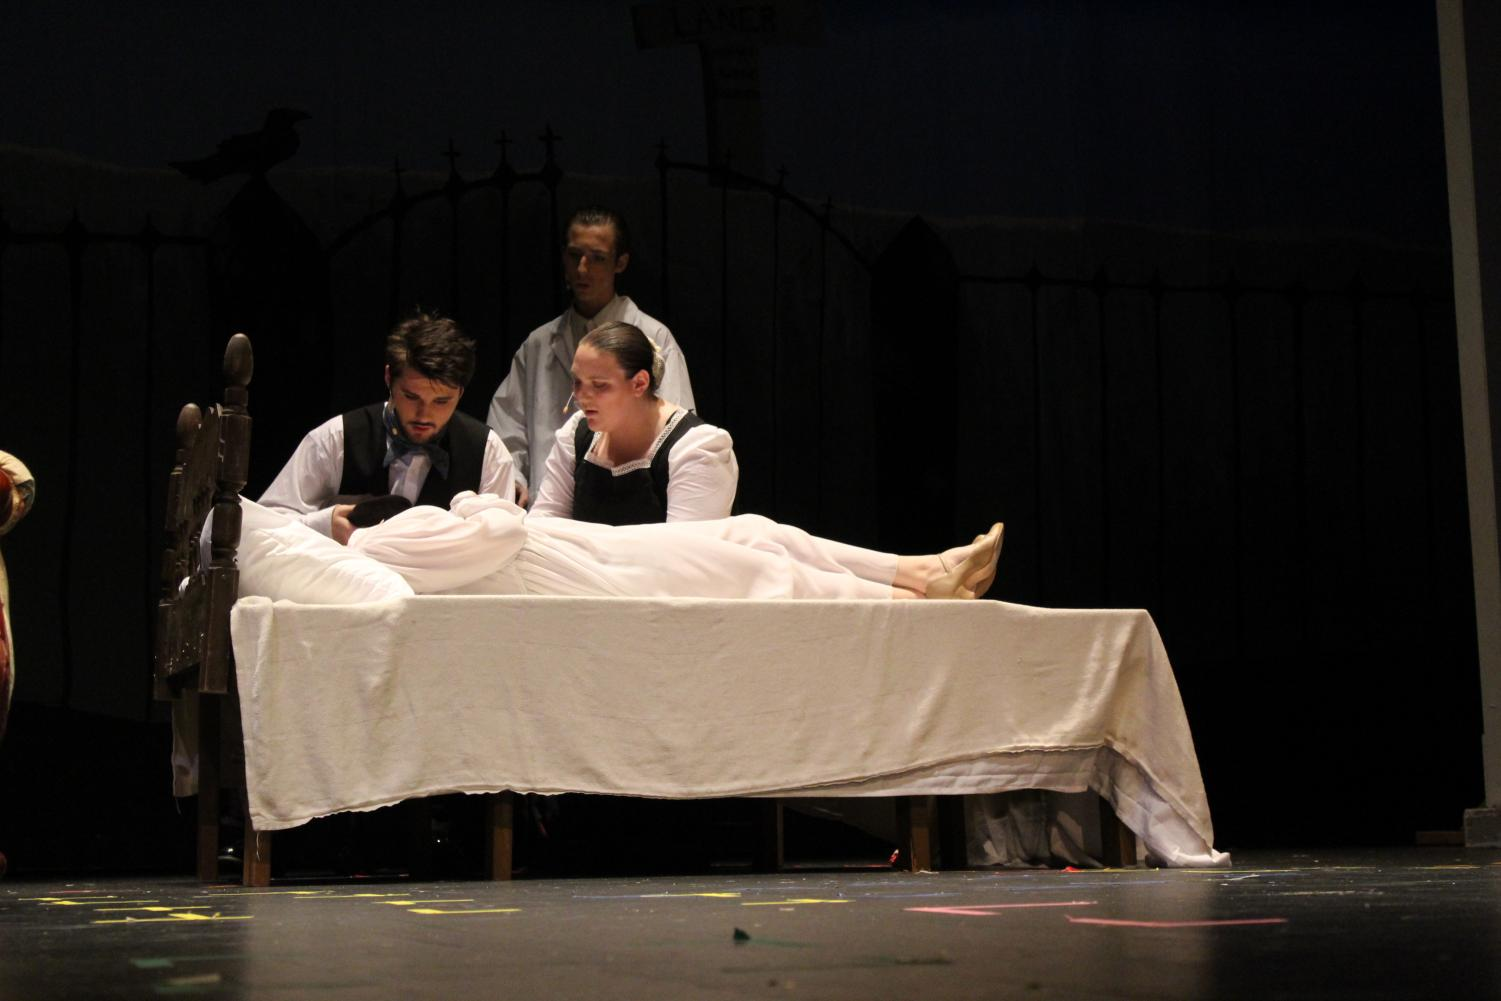 During+the+play+%22TellTale%22+Michela+Hughes+%2812%29%2C+Noah+Rye+%2810%29+and+Owen+Frizell%27s+%2810%29+characters+sing+over+the+corpse+of+Sam+Dudek%27s+%2811%29+character.+The+play+was+about+the+life+of+author+Edgar+Allen+Poe.